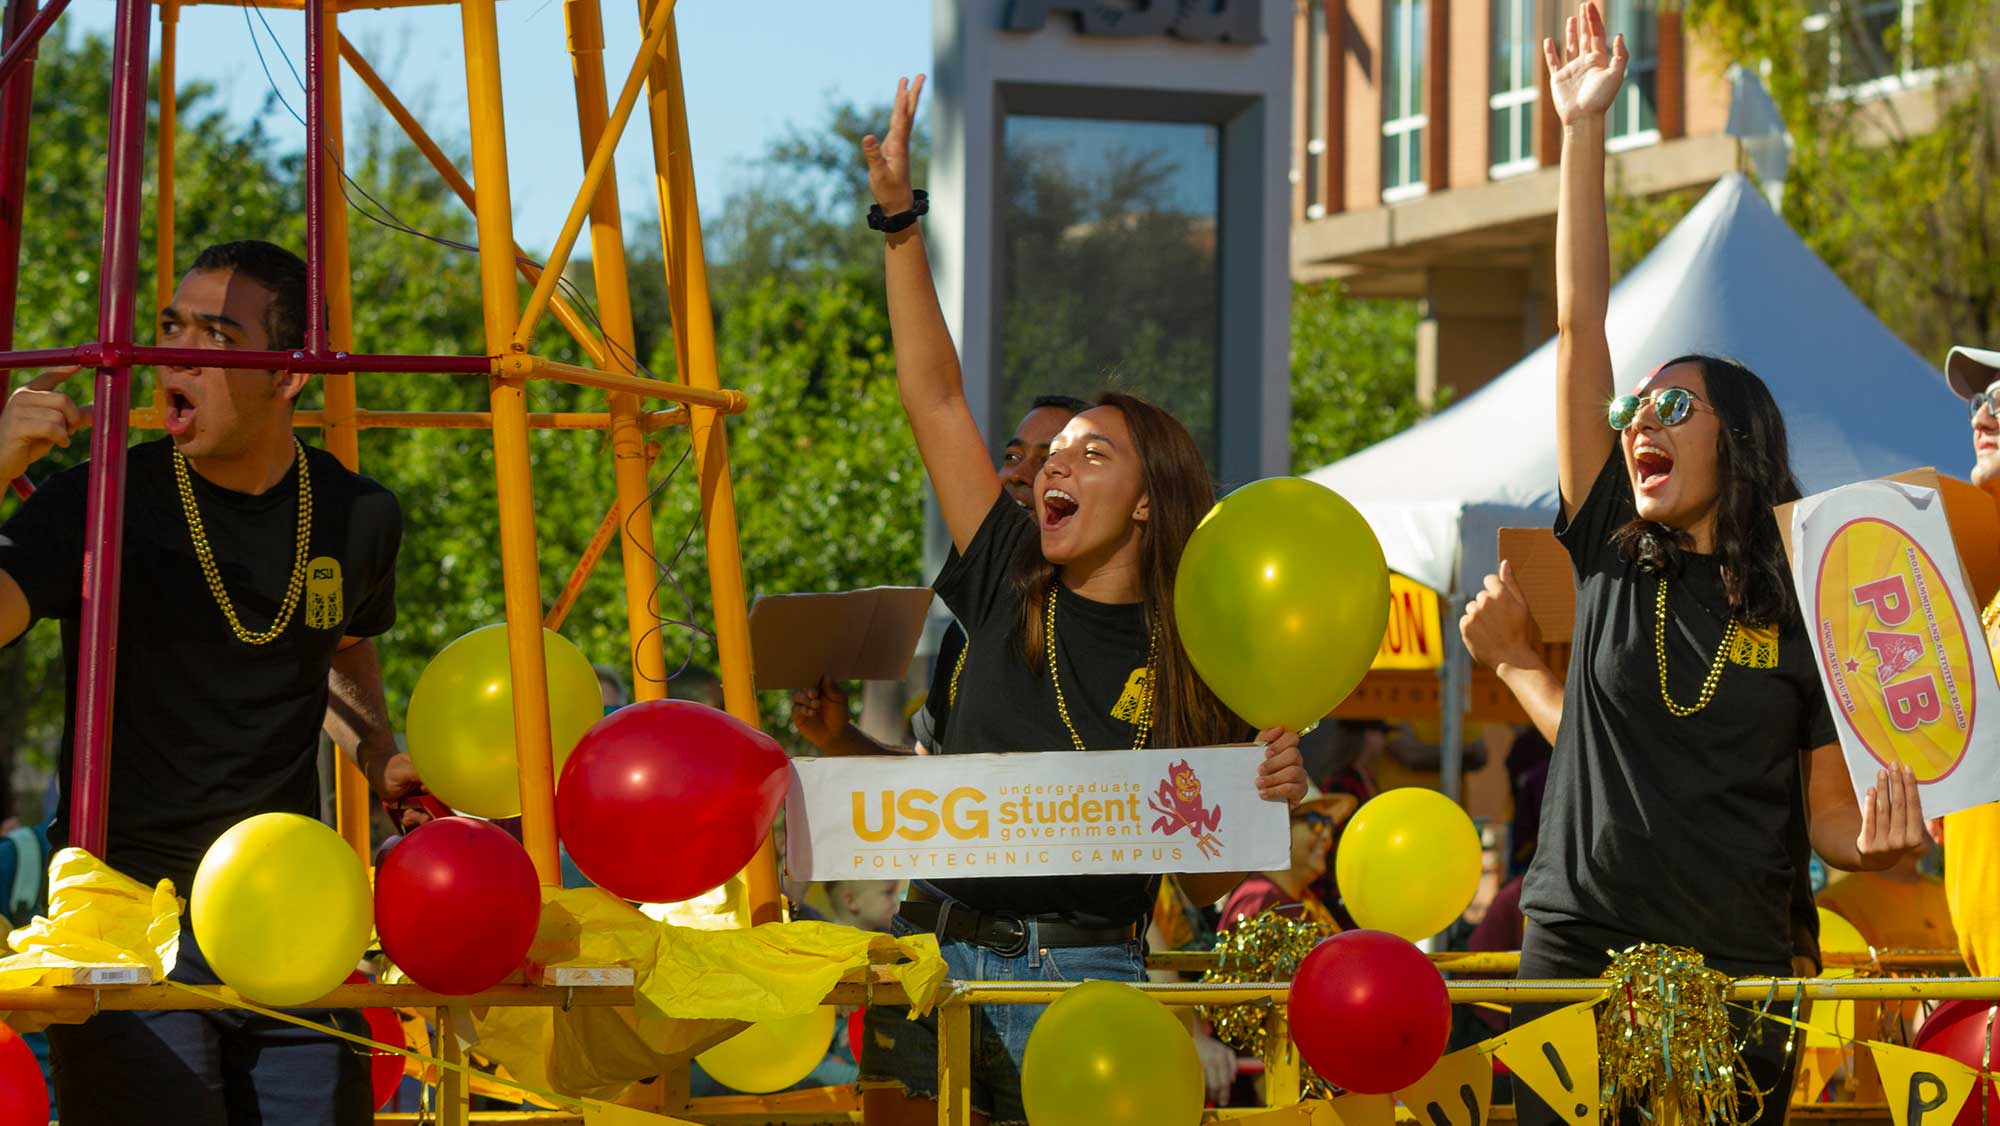 Fulton Schools students stand on a homecoming float, yelling with excitement